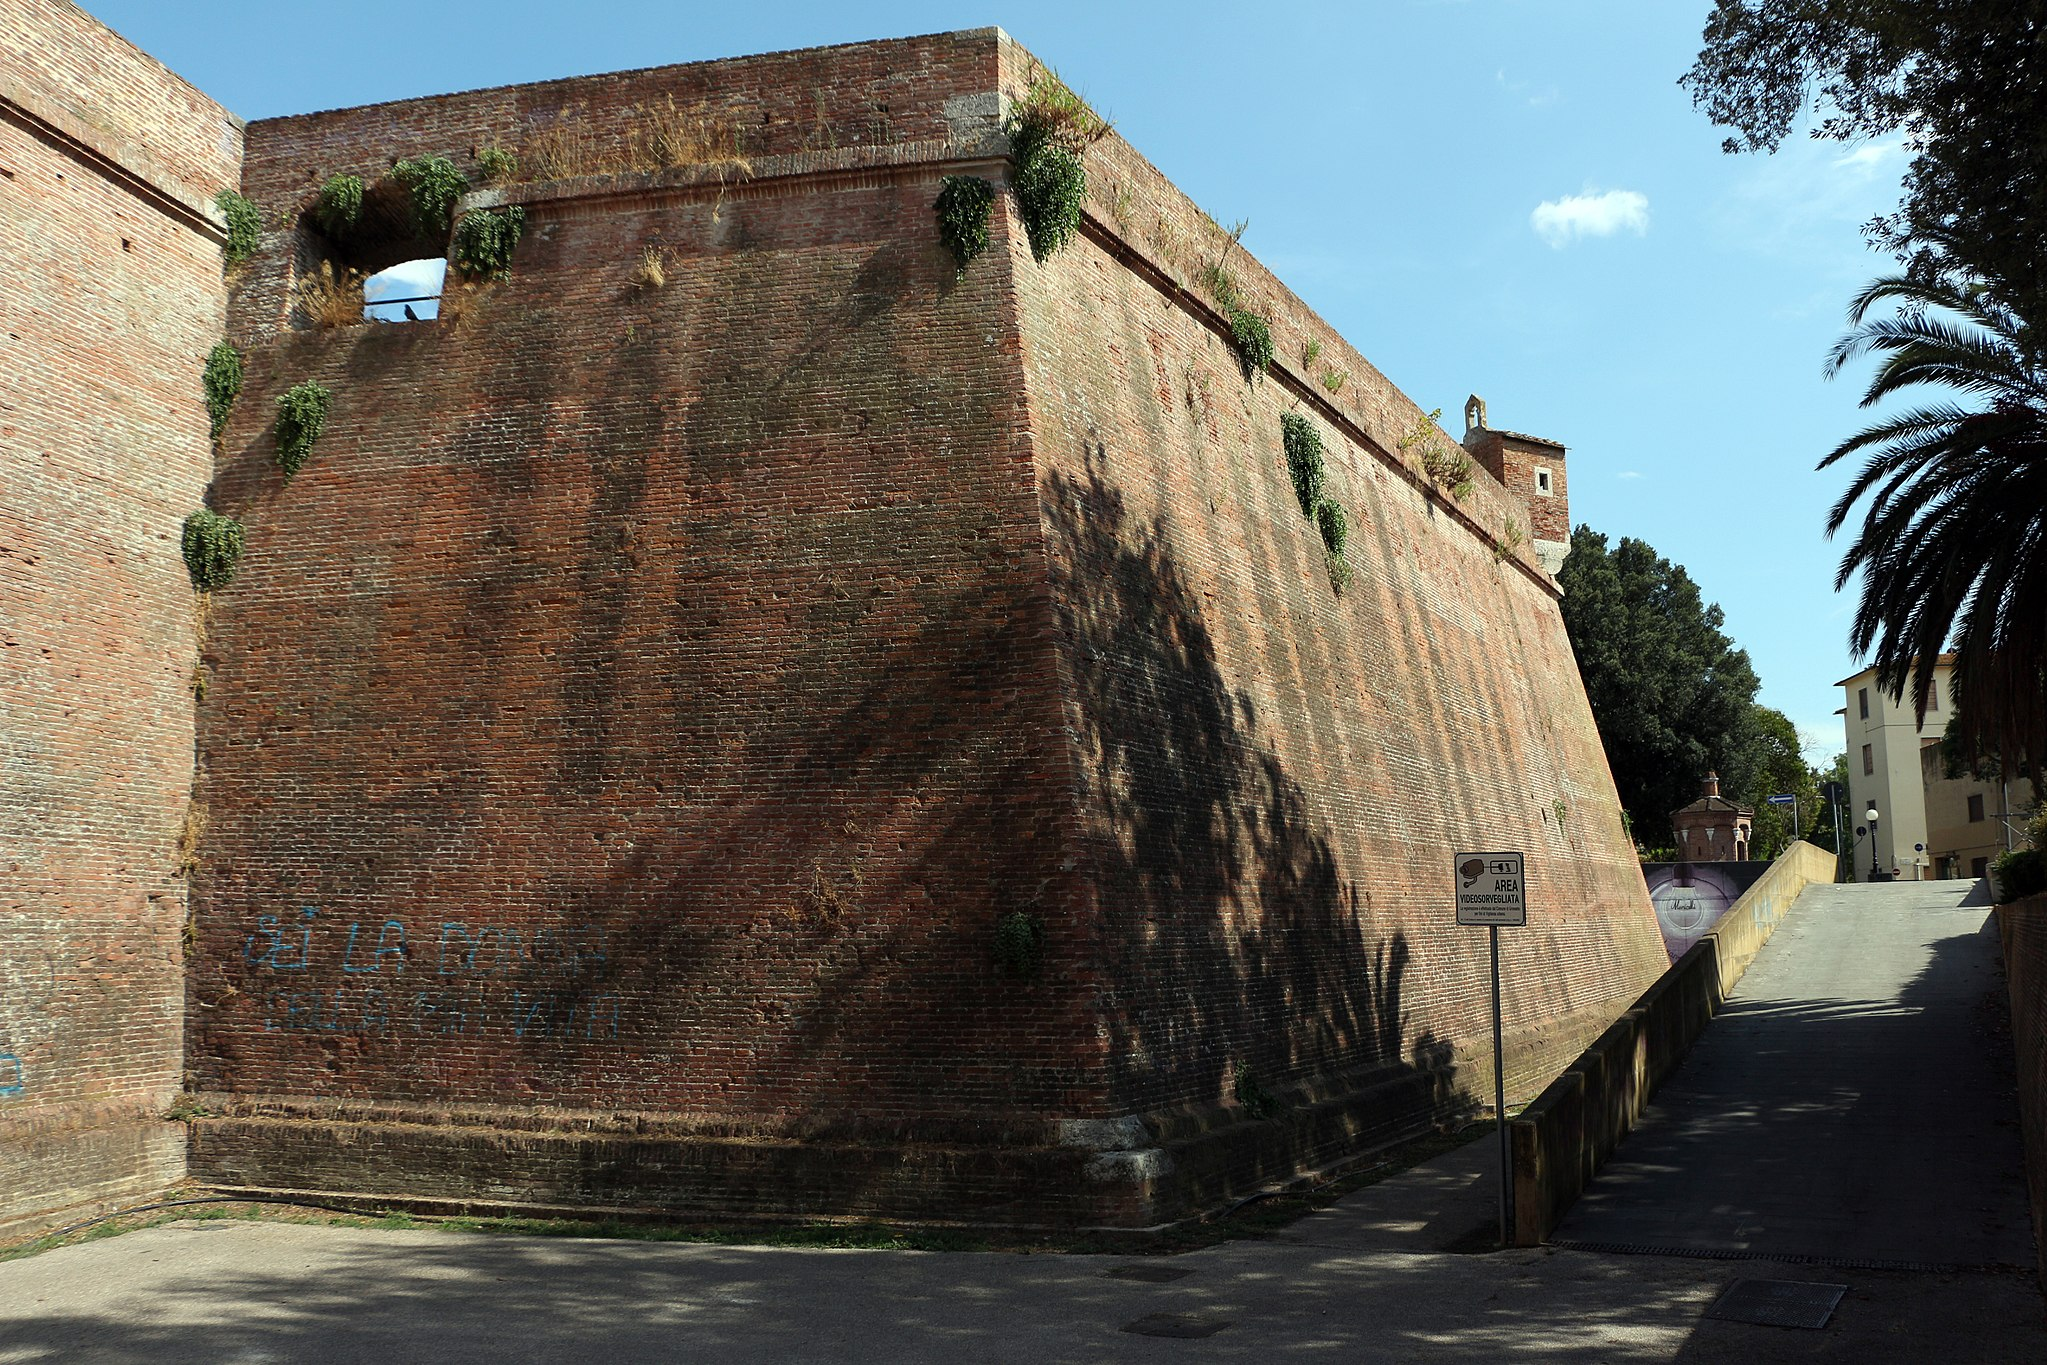 Grosseto, old center and Medici walls, 'cassero senese'